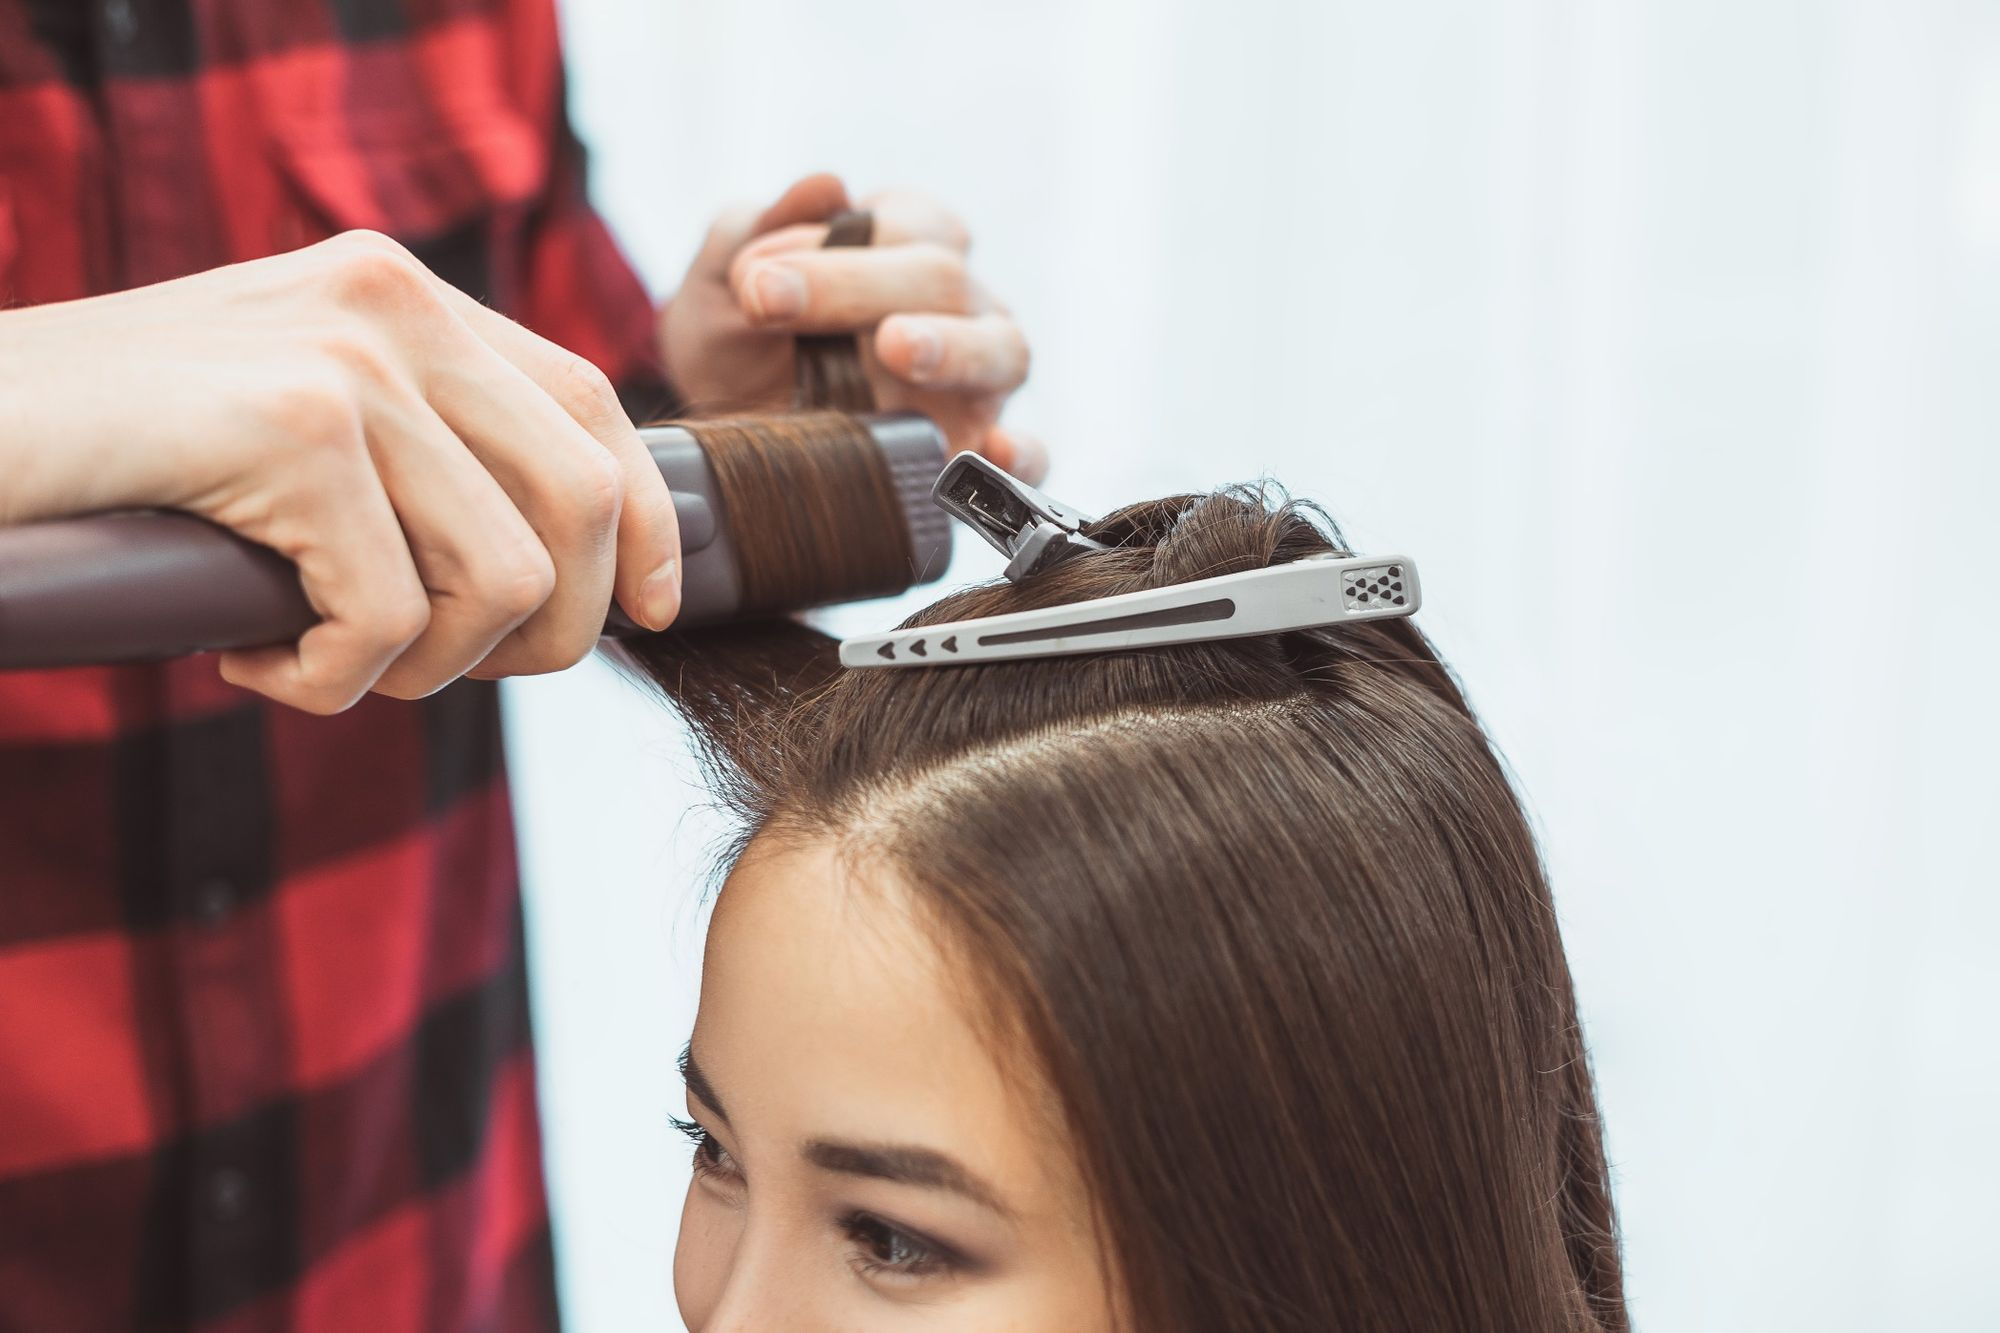 hair-stylist-barber-styling-long-hair-with-hair-iron-for-beautiful-young-asian-woman-in-beauty-salon_t20_VWYVgl.jpg